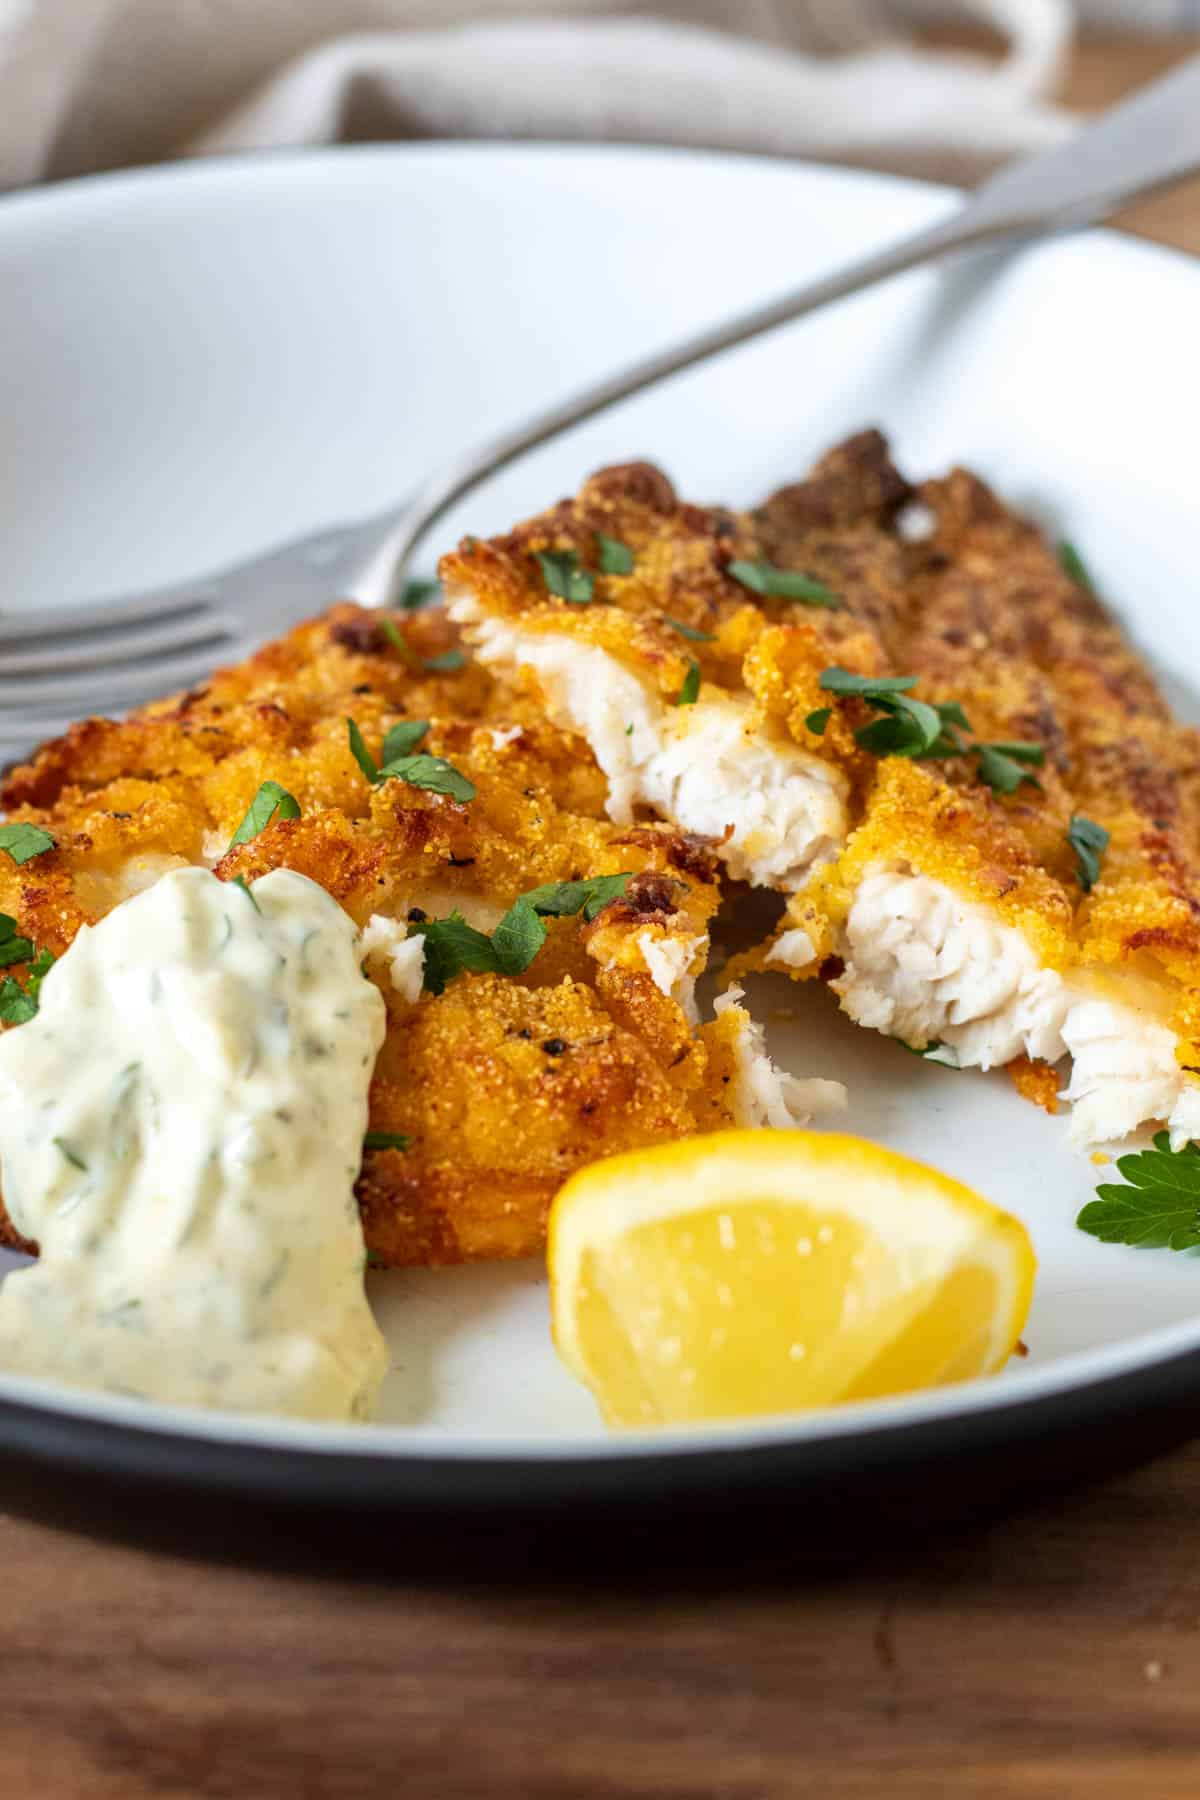 Air fryer southern catfish on plate with tartar sauce and lemon.